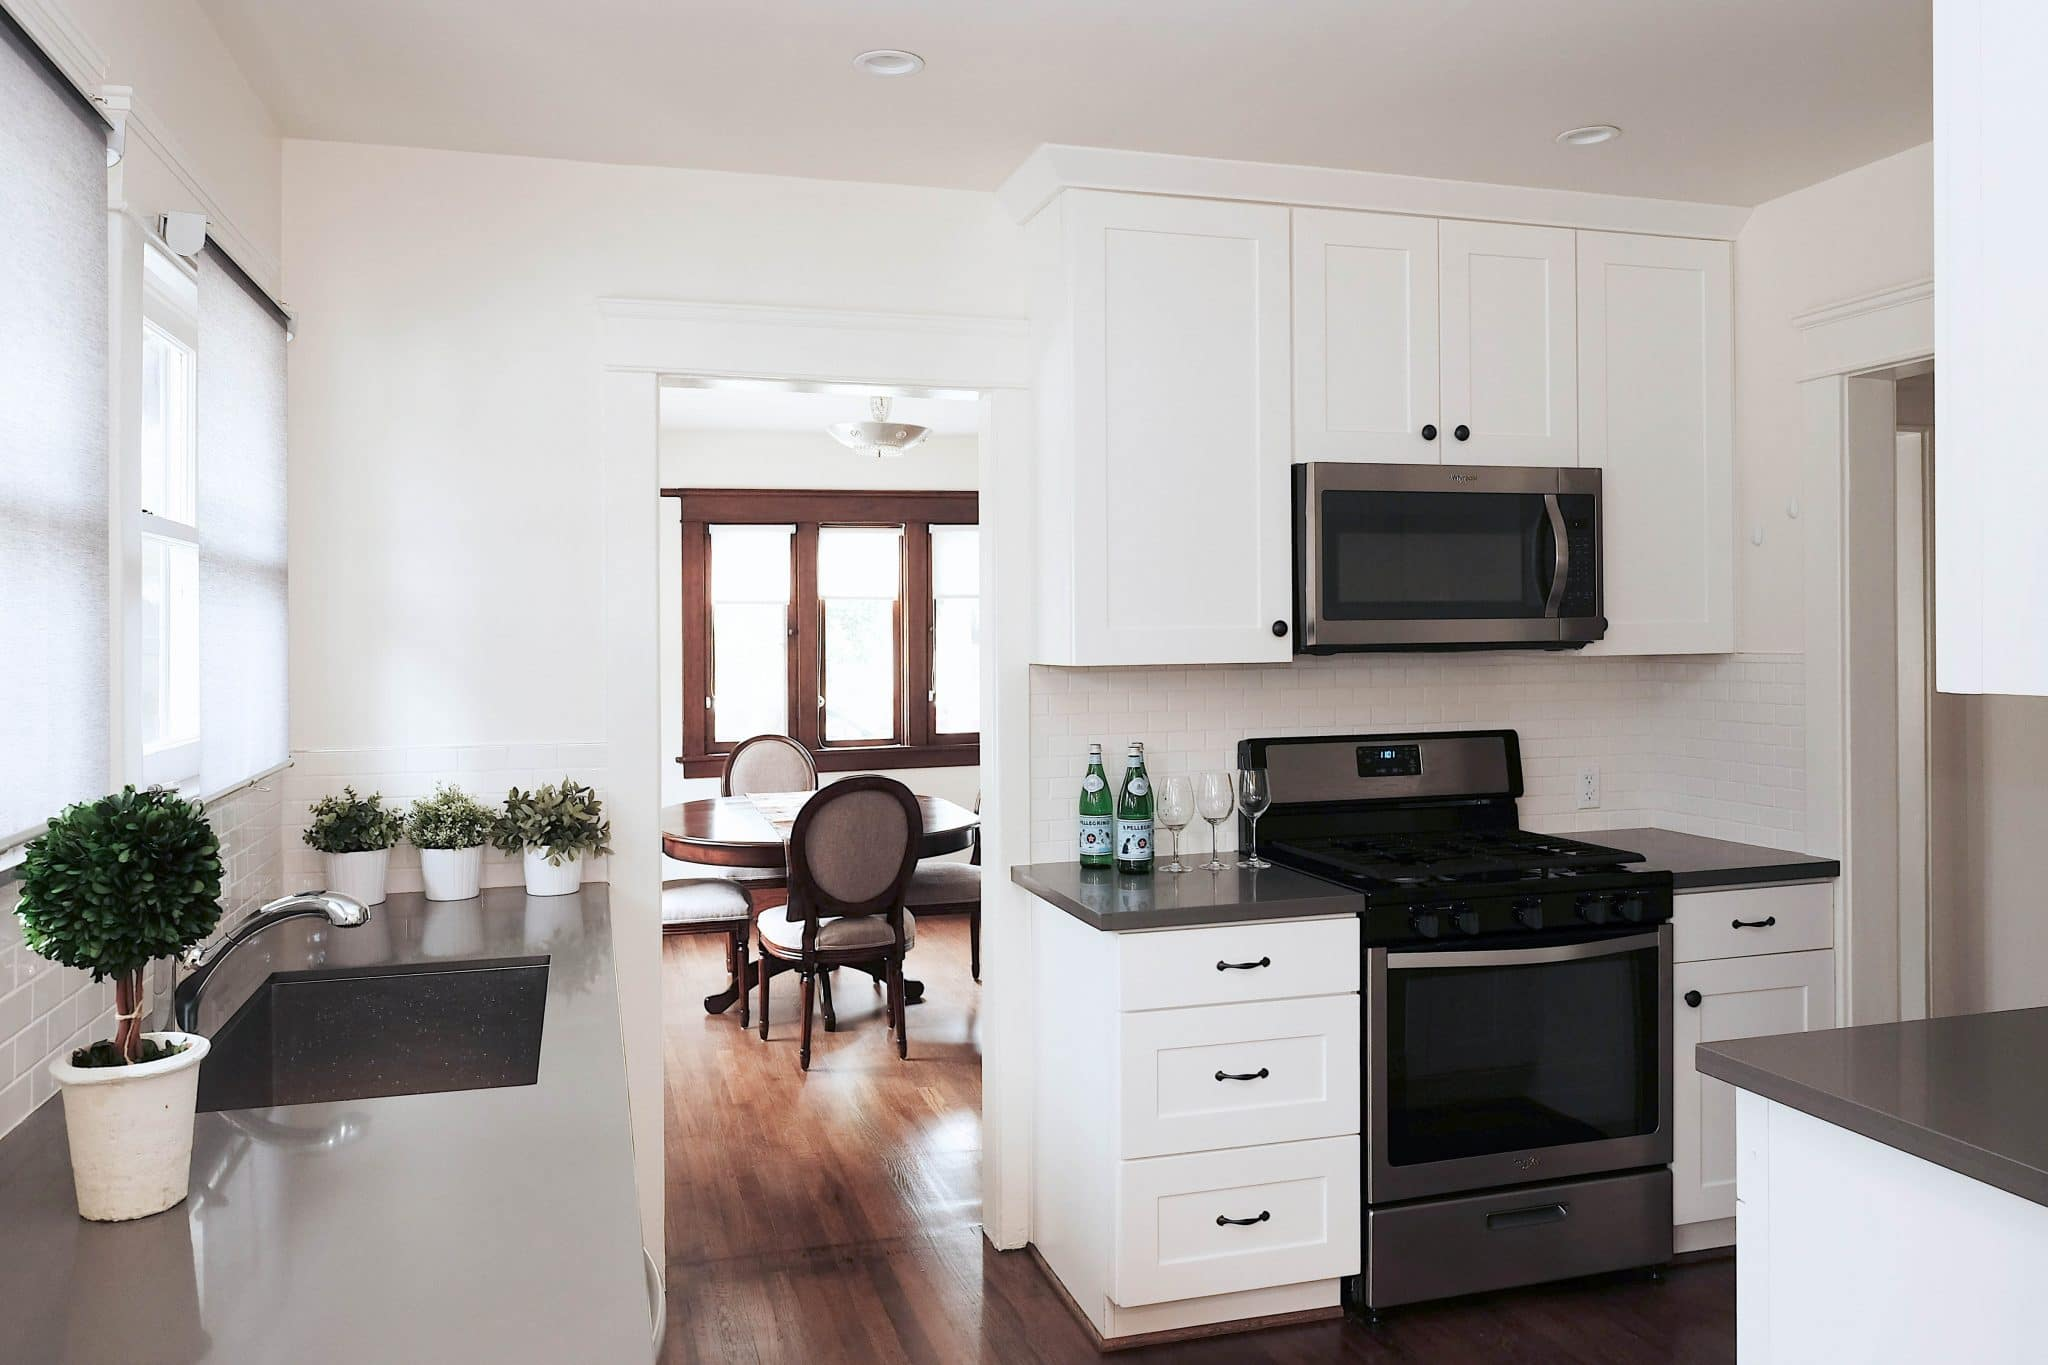 kitchen wholesale remodeling silver spring md buy cabinets direct from the manufacturer for prices